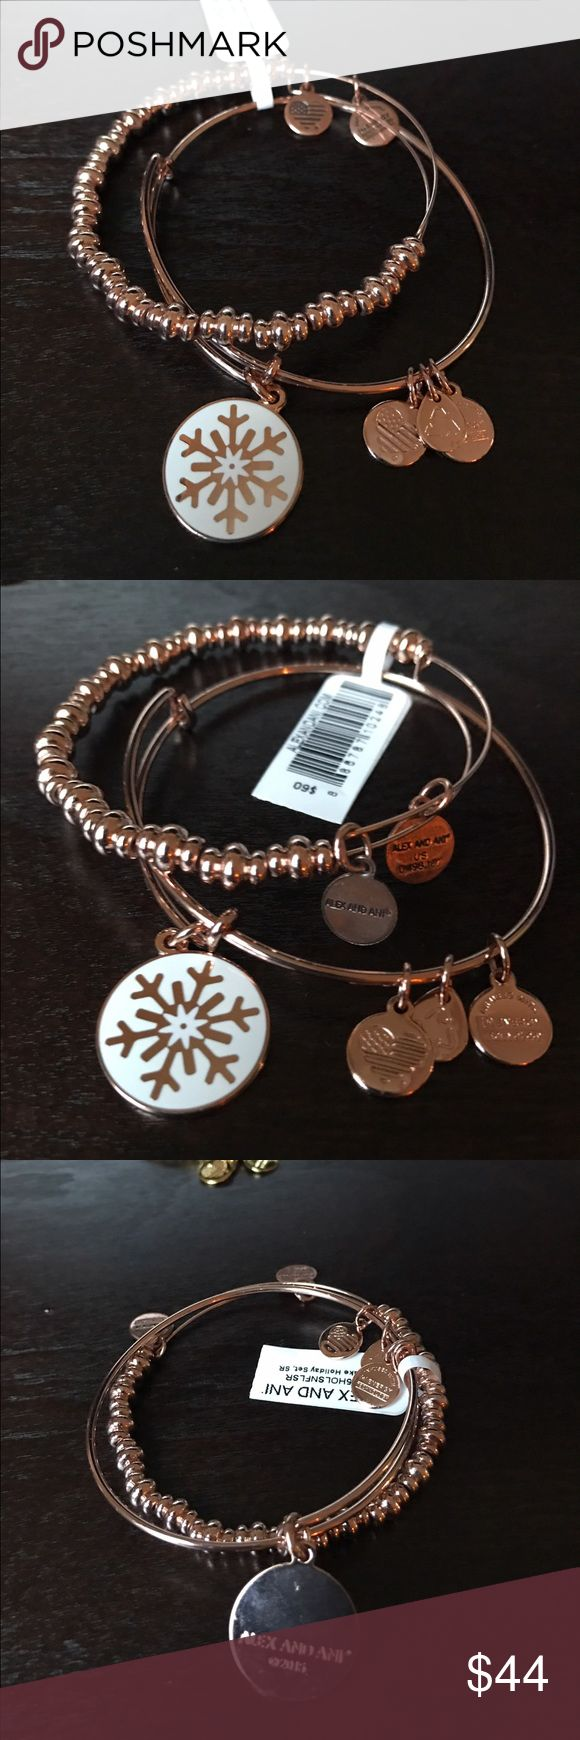 ❣️Rare❣️ set of rose gold Alex and Ani bracelets ❣️Very rare set of shiny rose gold Alex and Ani bracelets. One is a shiny beaded rose gold bracelet and the other is shiny rose gold with a white and rose gold snowflake ❄️ truly a beautiful set. New with retail tags Alex & Ani Jewelry Bracelets